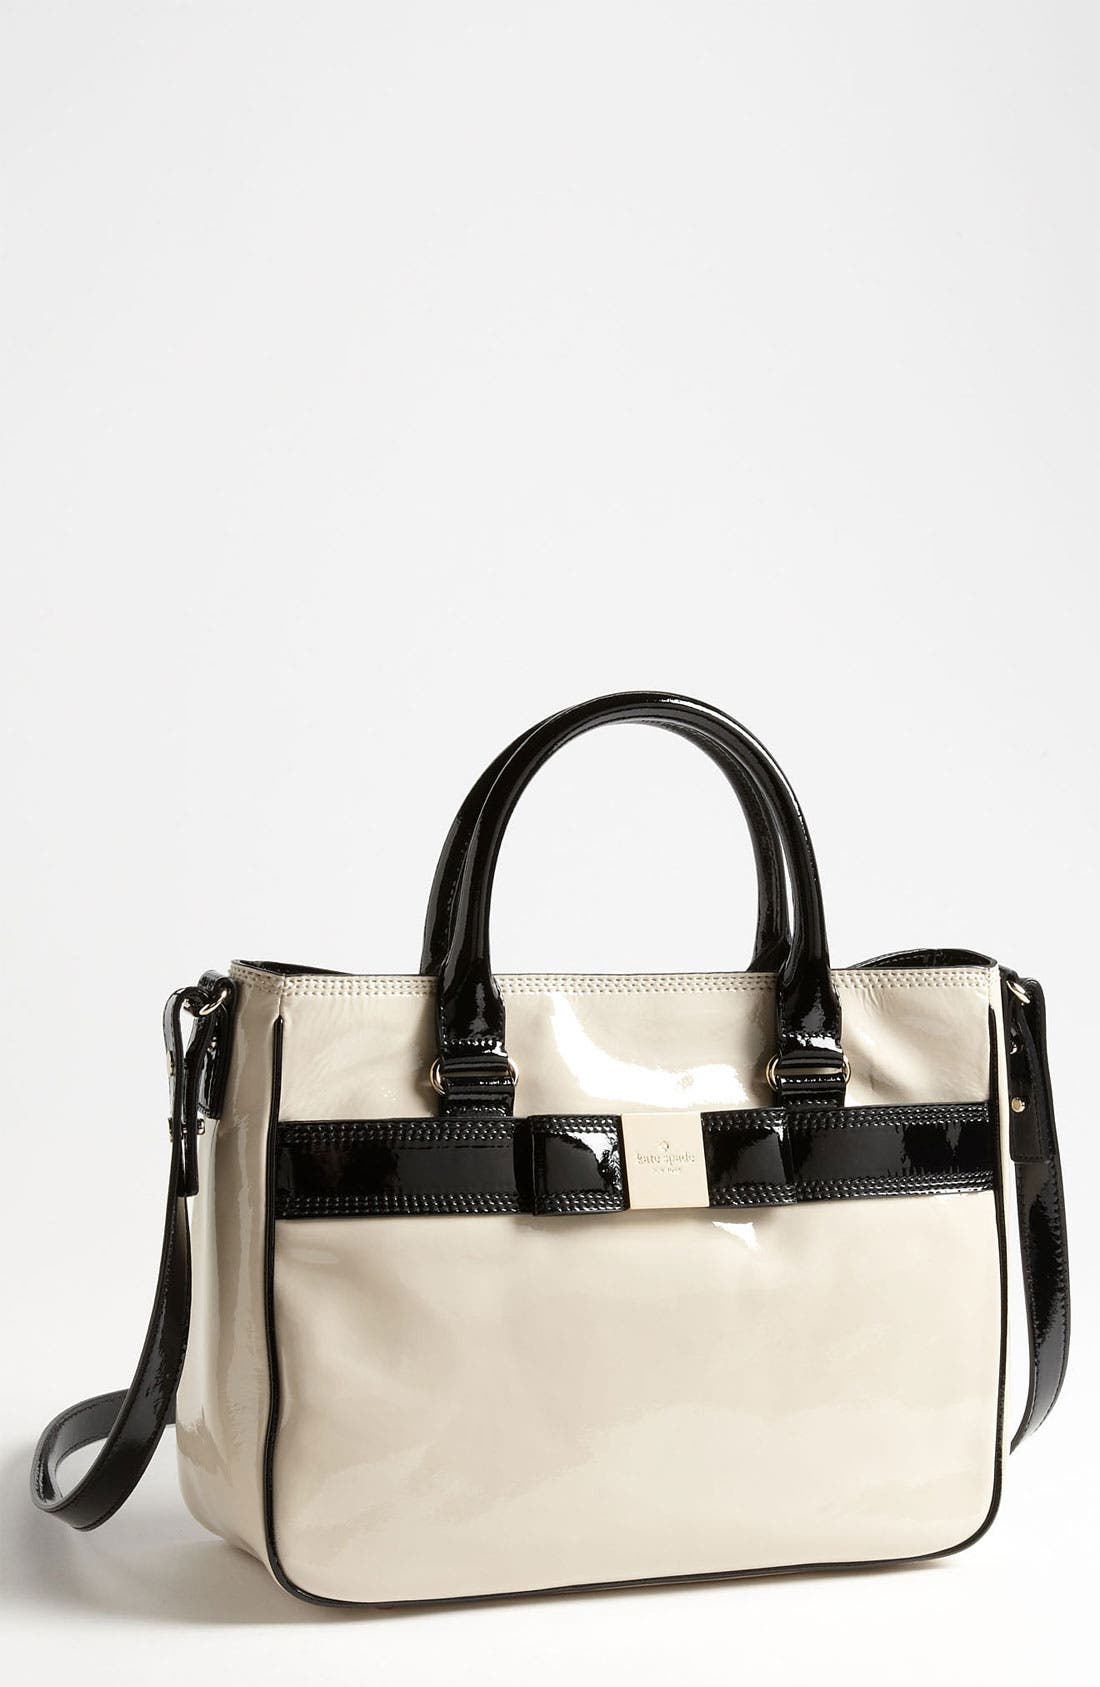 Main Image - kate spade new york 'primrose hill - goldie' handbag